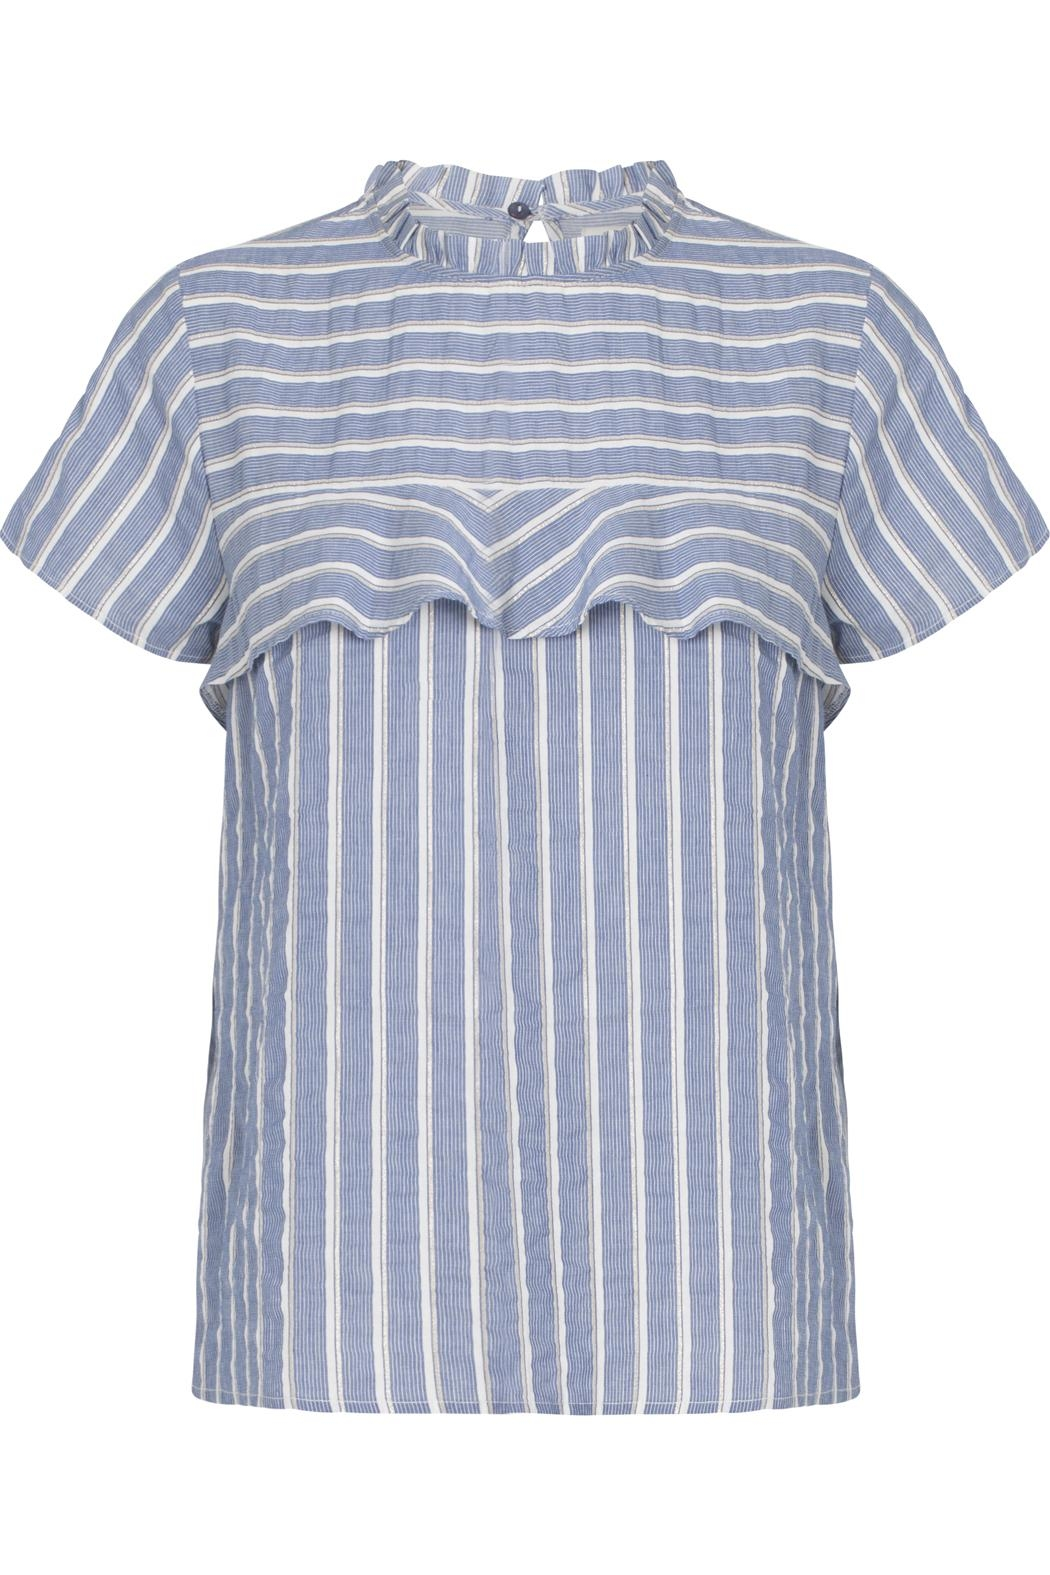 Munthe Striped Blouse - Front Full Image